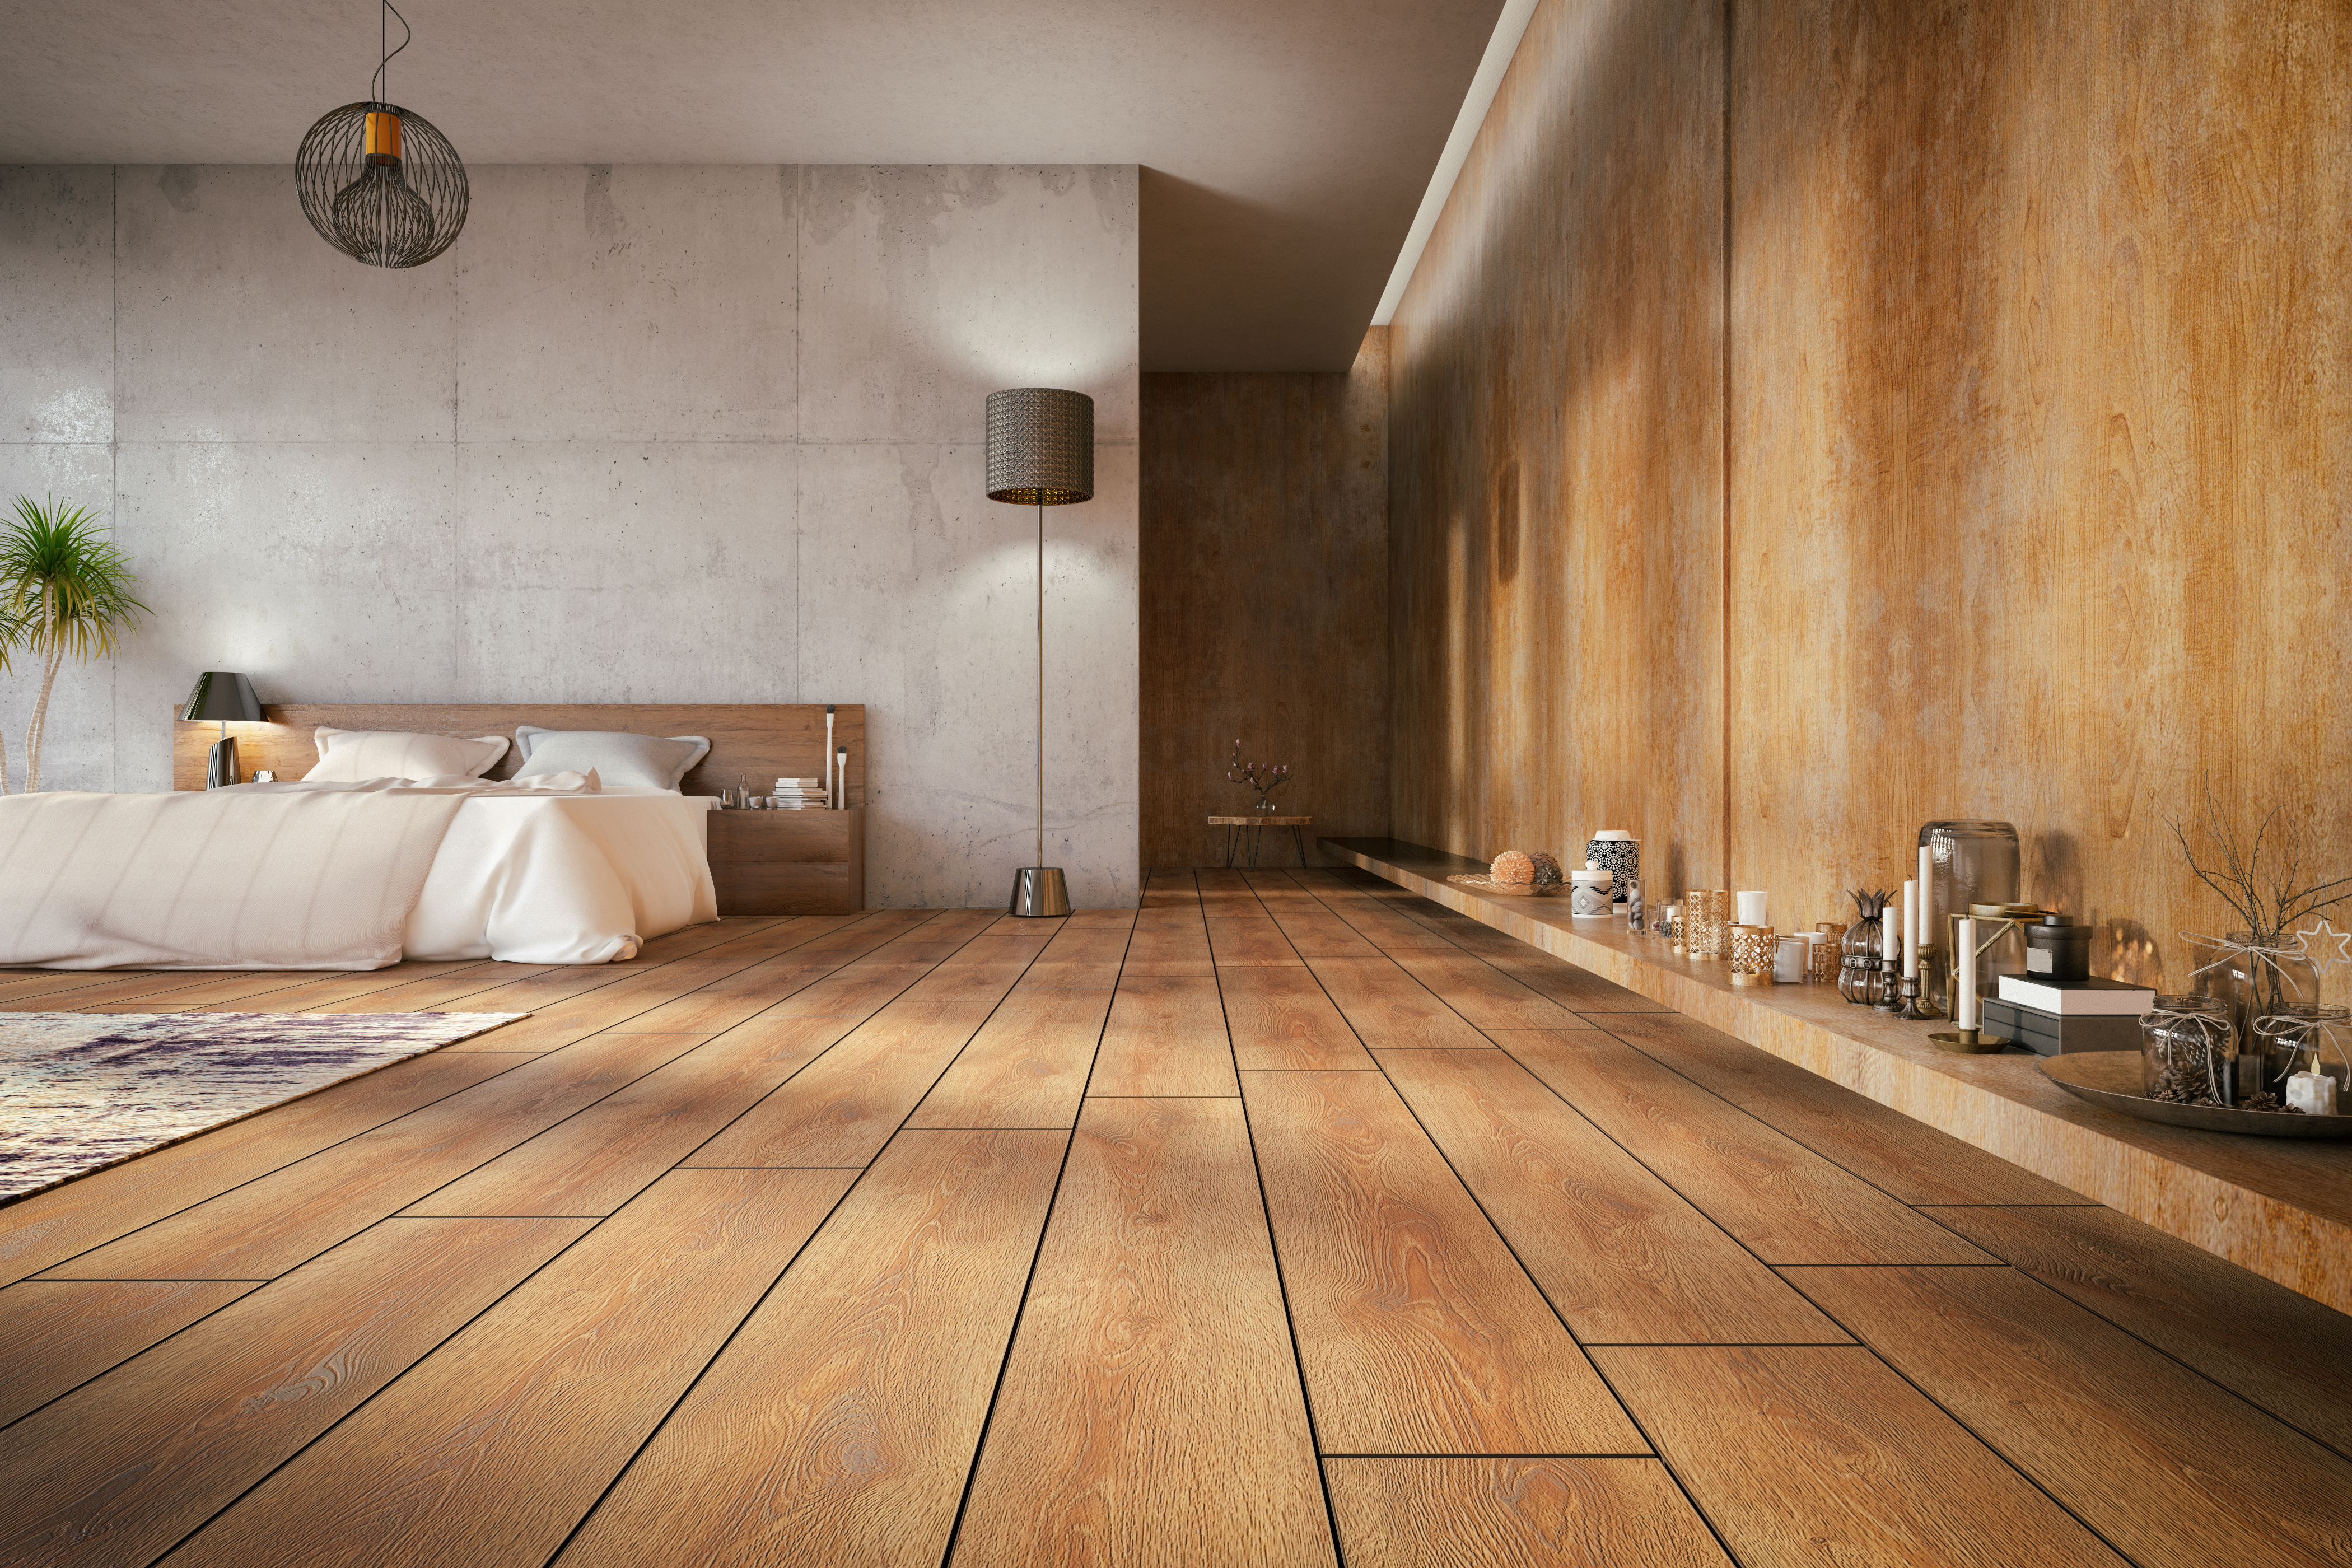 How To Dry Wet Wood In A House Hunker